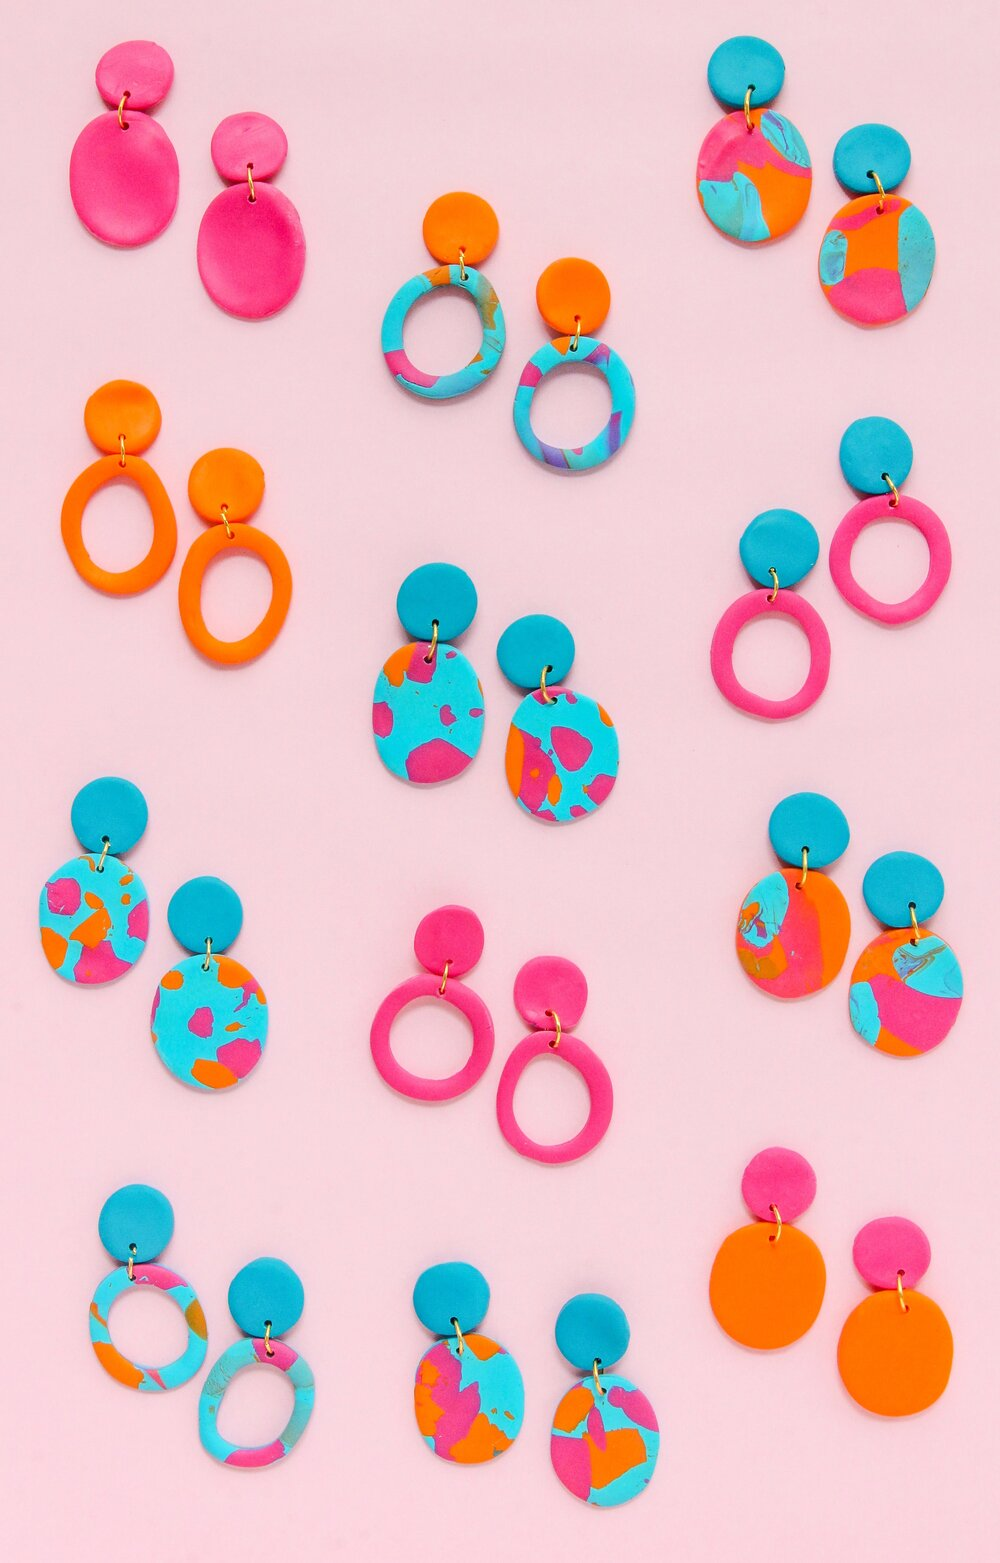 Earrings by Rachel Mae Smith, The Crafted Life